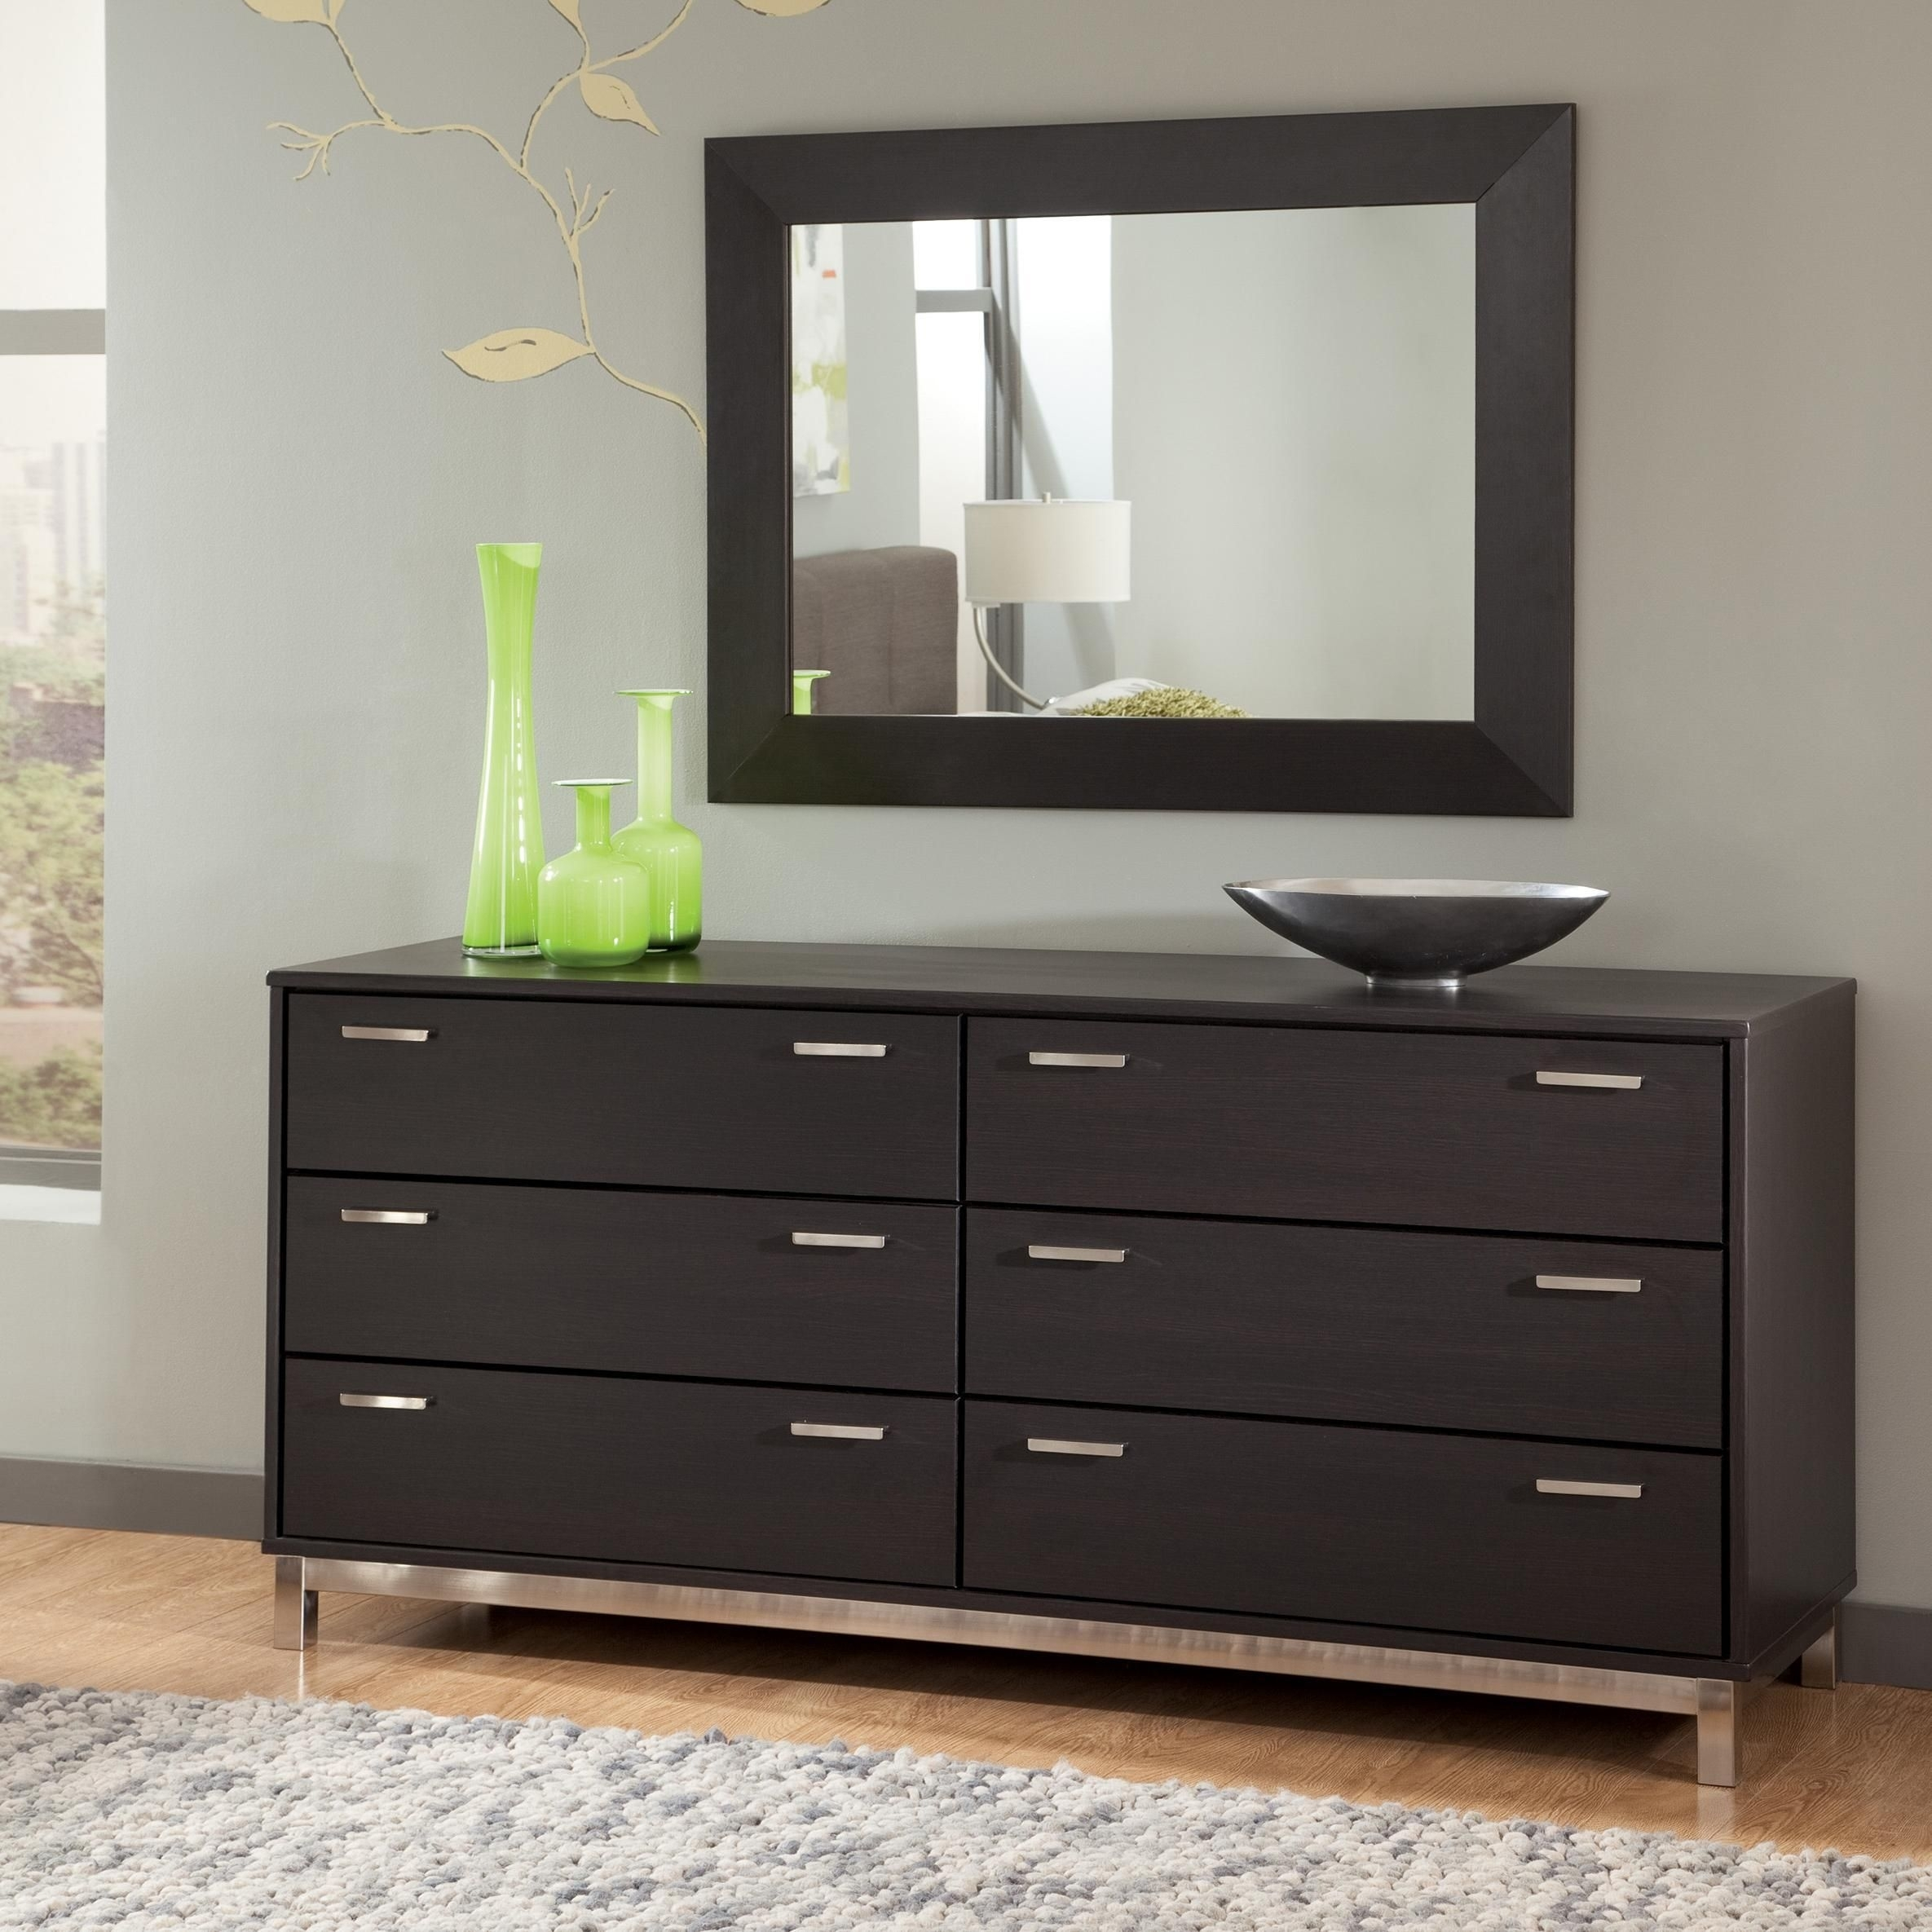 Modern Dresser Furniture With Design Black Color | My Dream Home in Mandara 3-Drawer 2-Door Sideboards (Image 19 of 30)